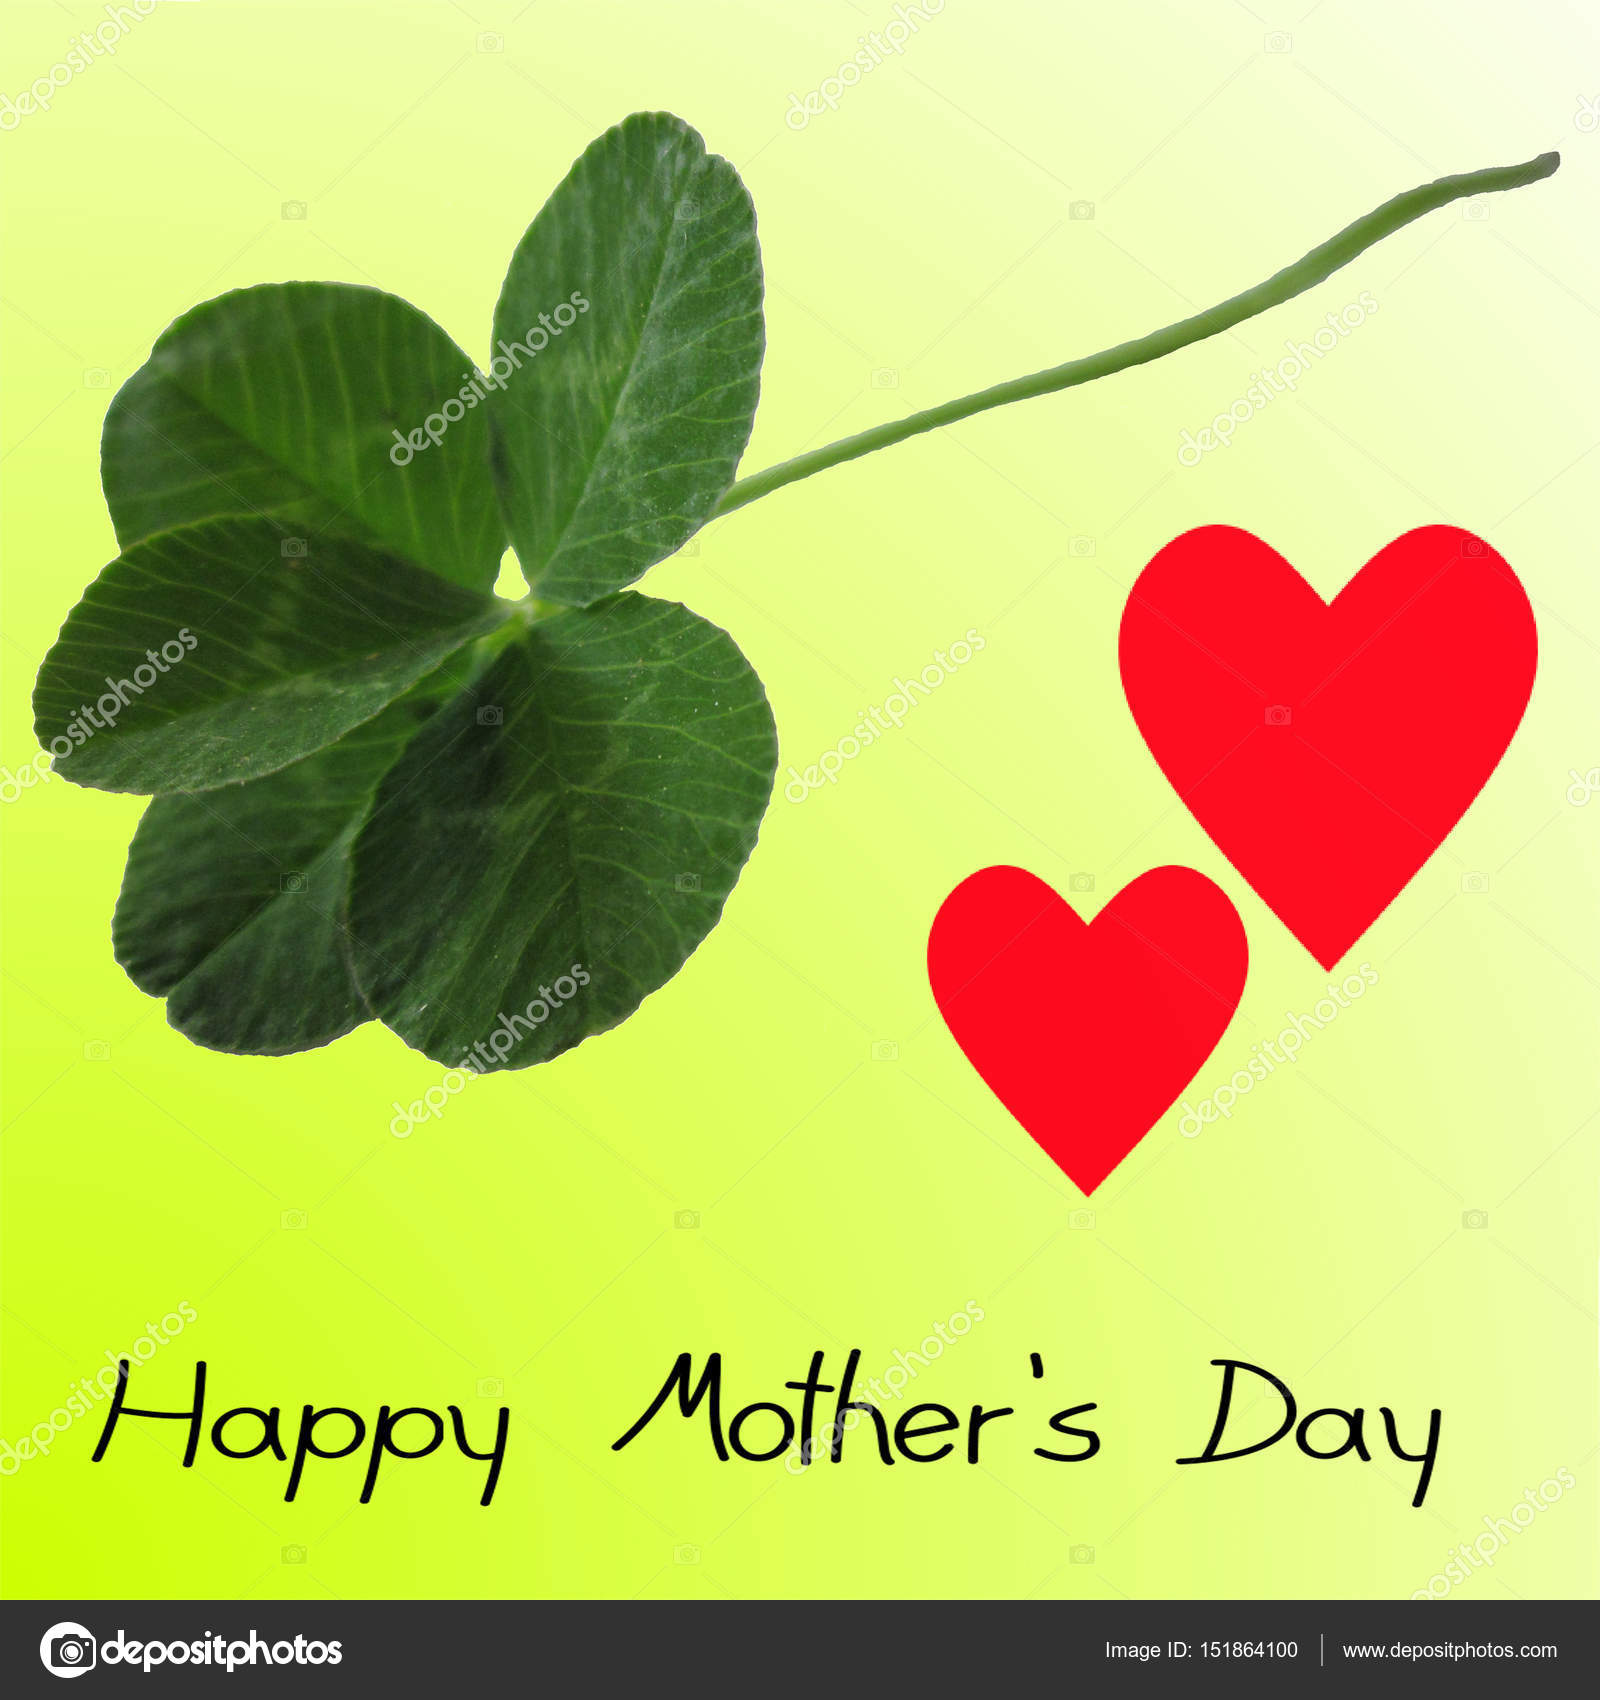 Five Leaf Clover Happy Mothers Day Stock Photo C UR Design 151864100